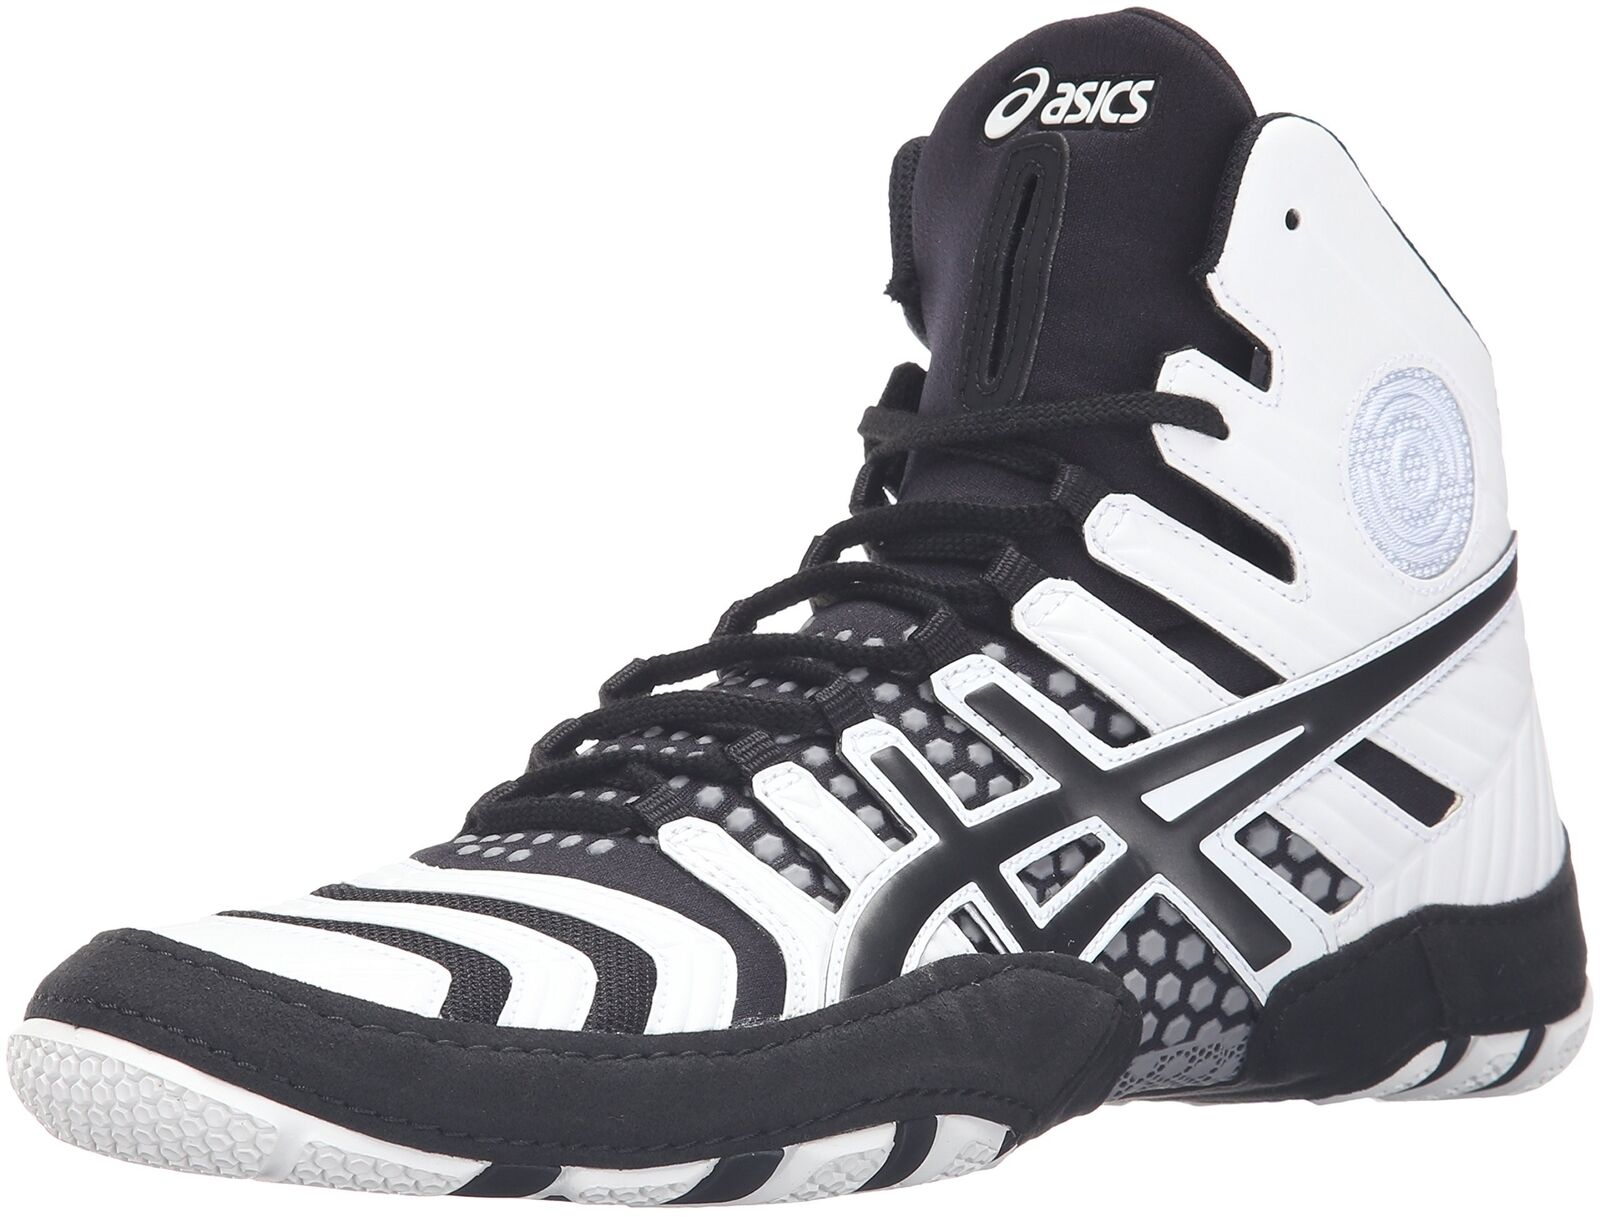 ASICS Men's Dan Gable Ultimate Ultimate Ultimate 4 Wrestling Shoe White/Black/Aluminum 9 M US New 2c28c8